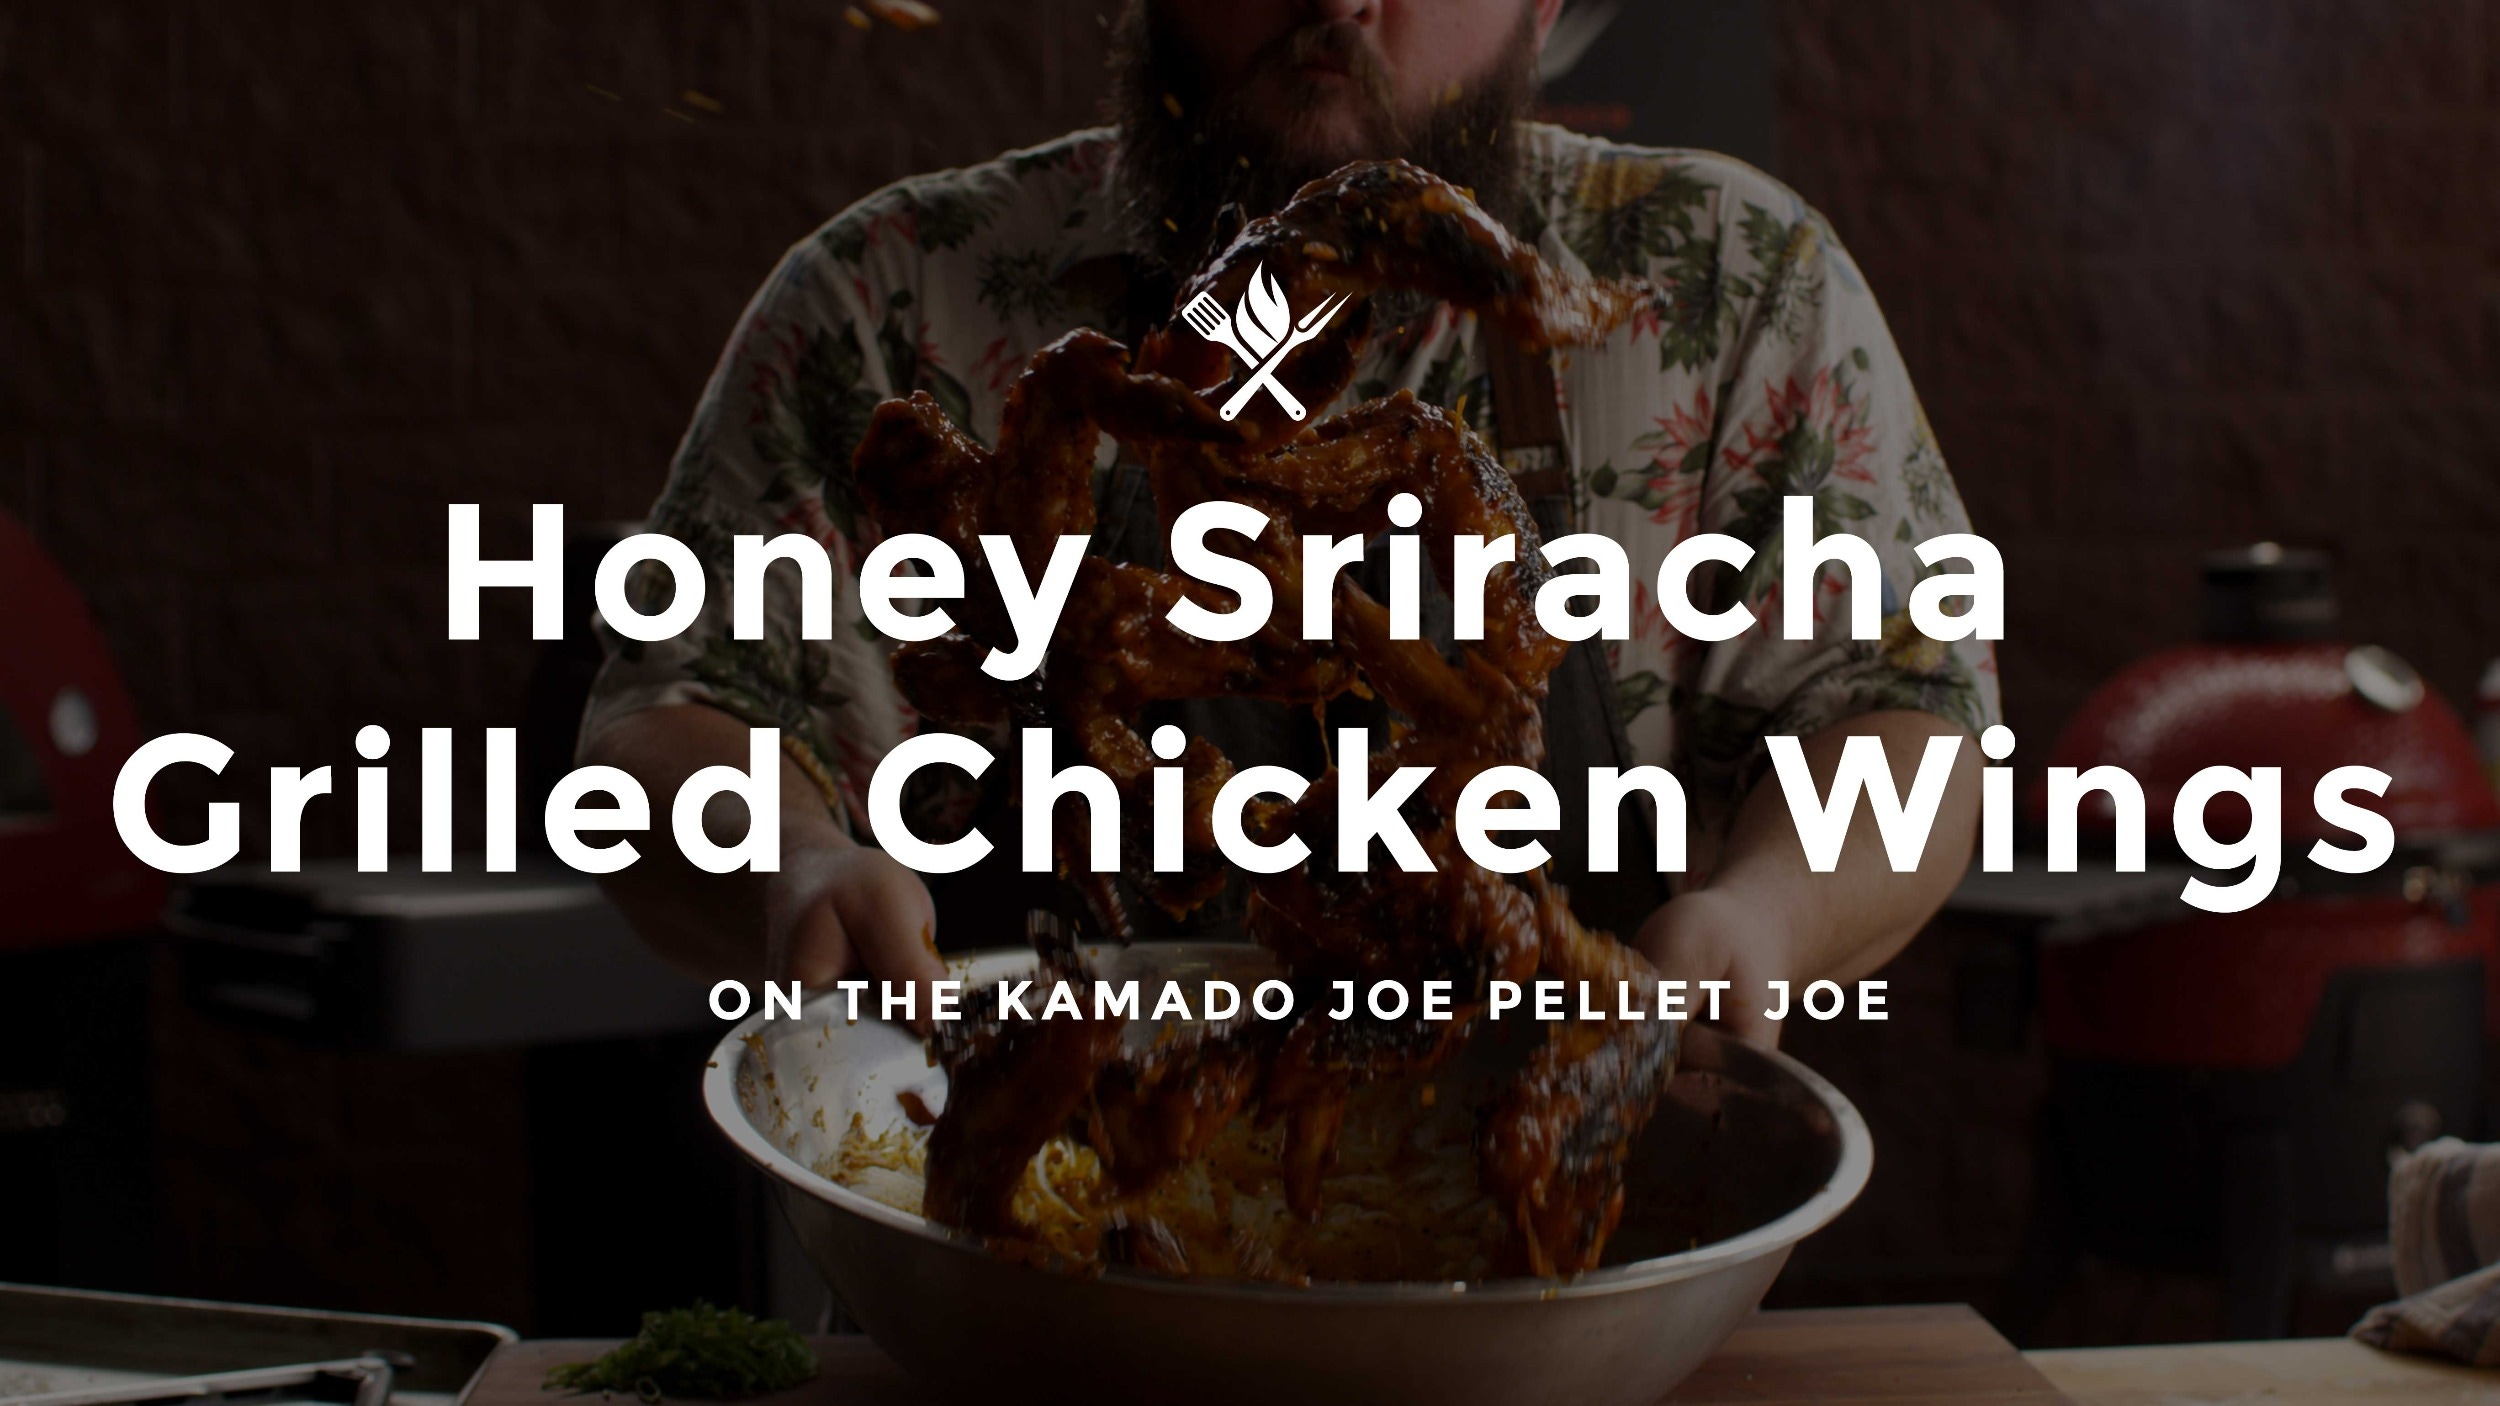 How to make Honey Sriracha Grilled Chicken Wings